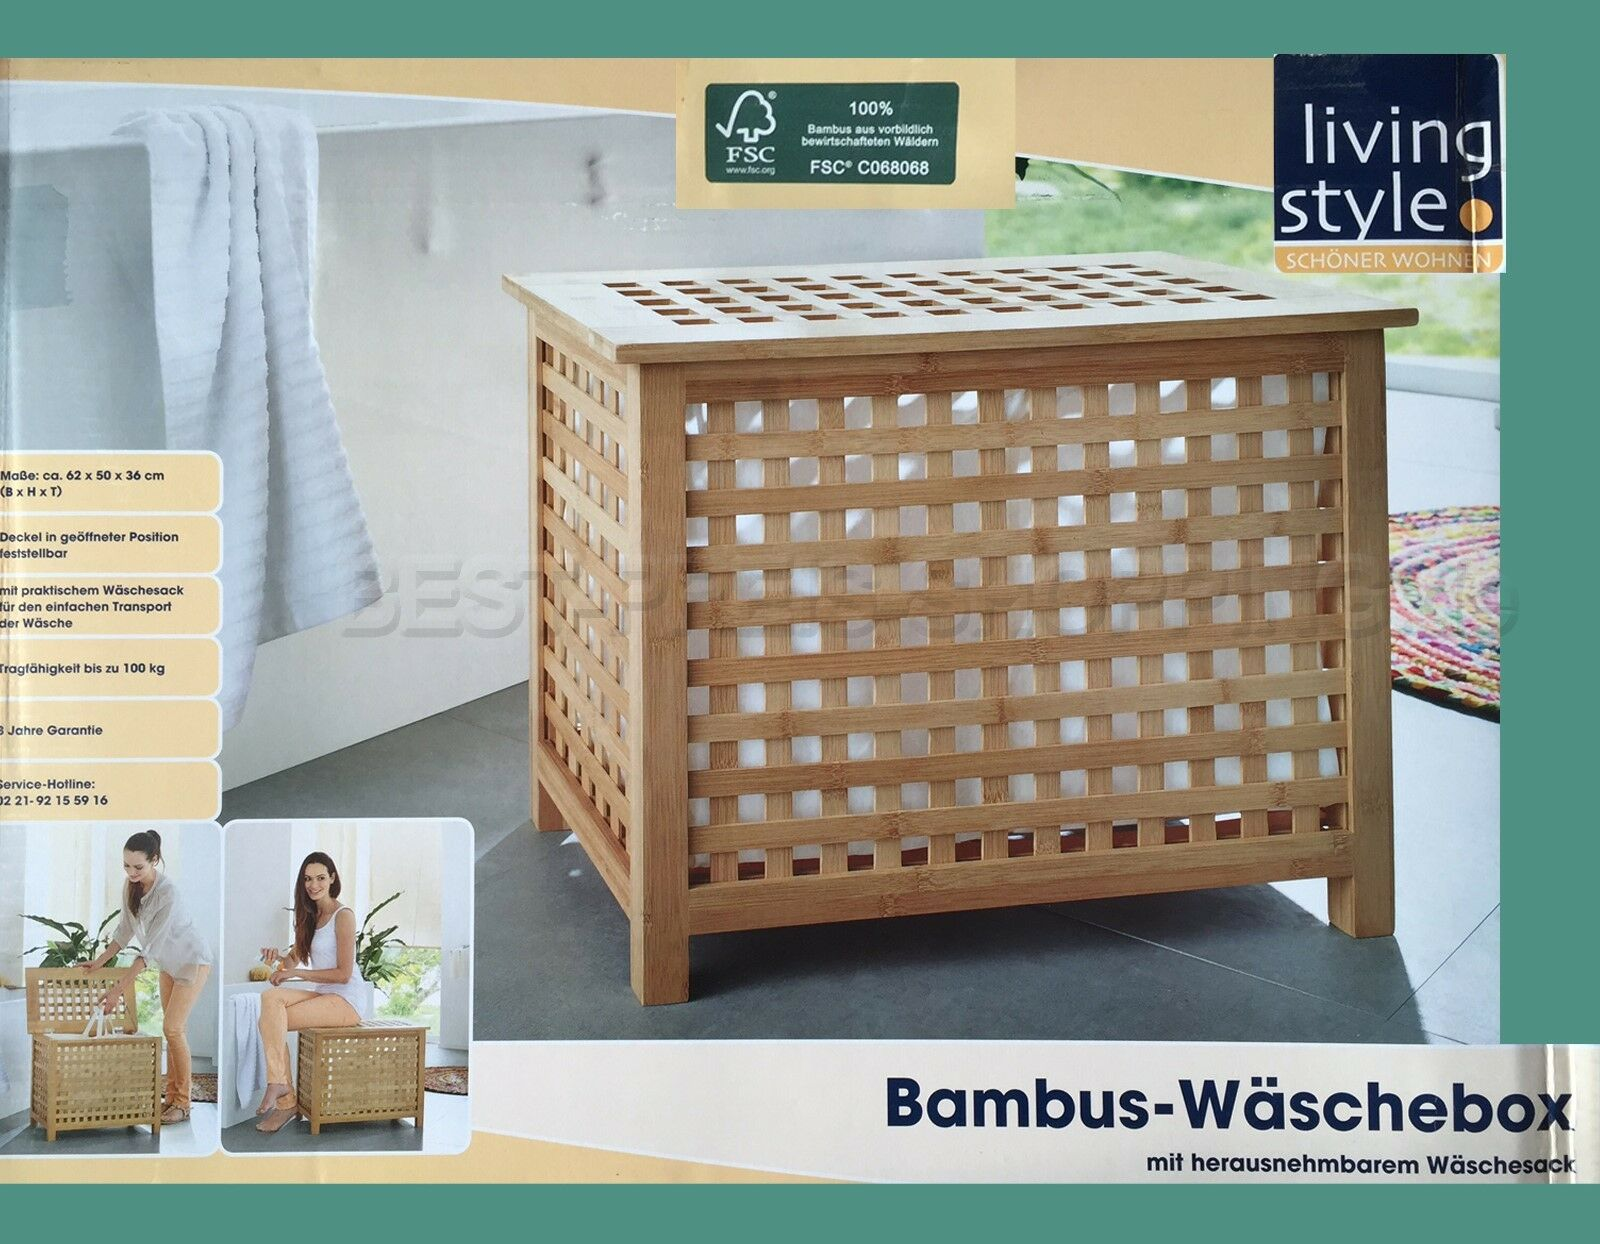 bambus w schebox bambusholz fsc mit herausnehmbarem w schesack sitzbank bad ebay. Black Bedroom Furniture Sets. Home Design Ideas